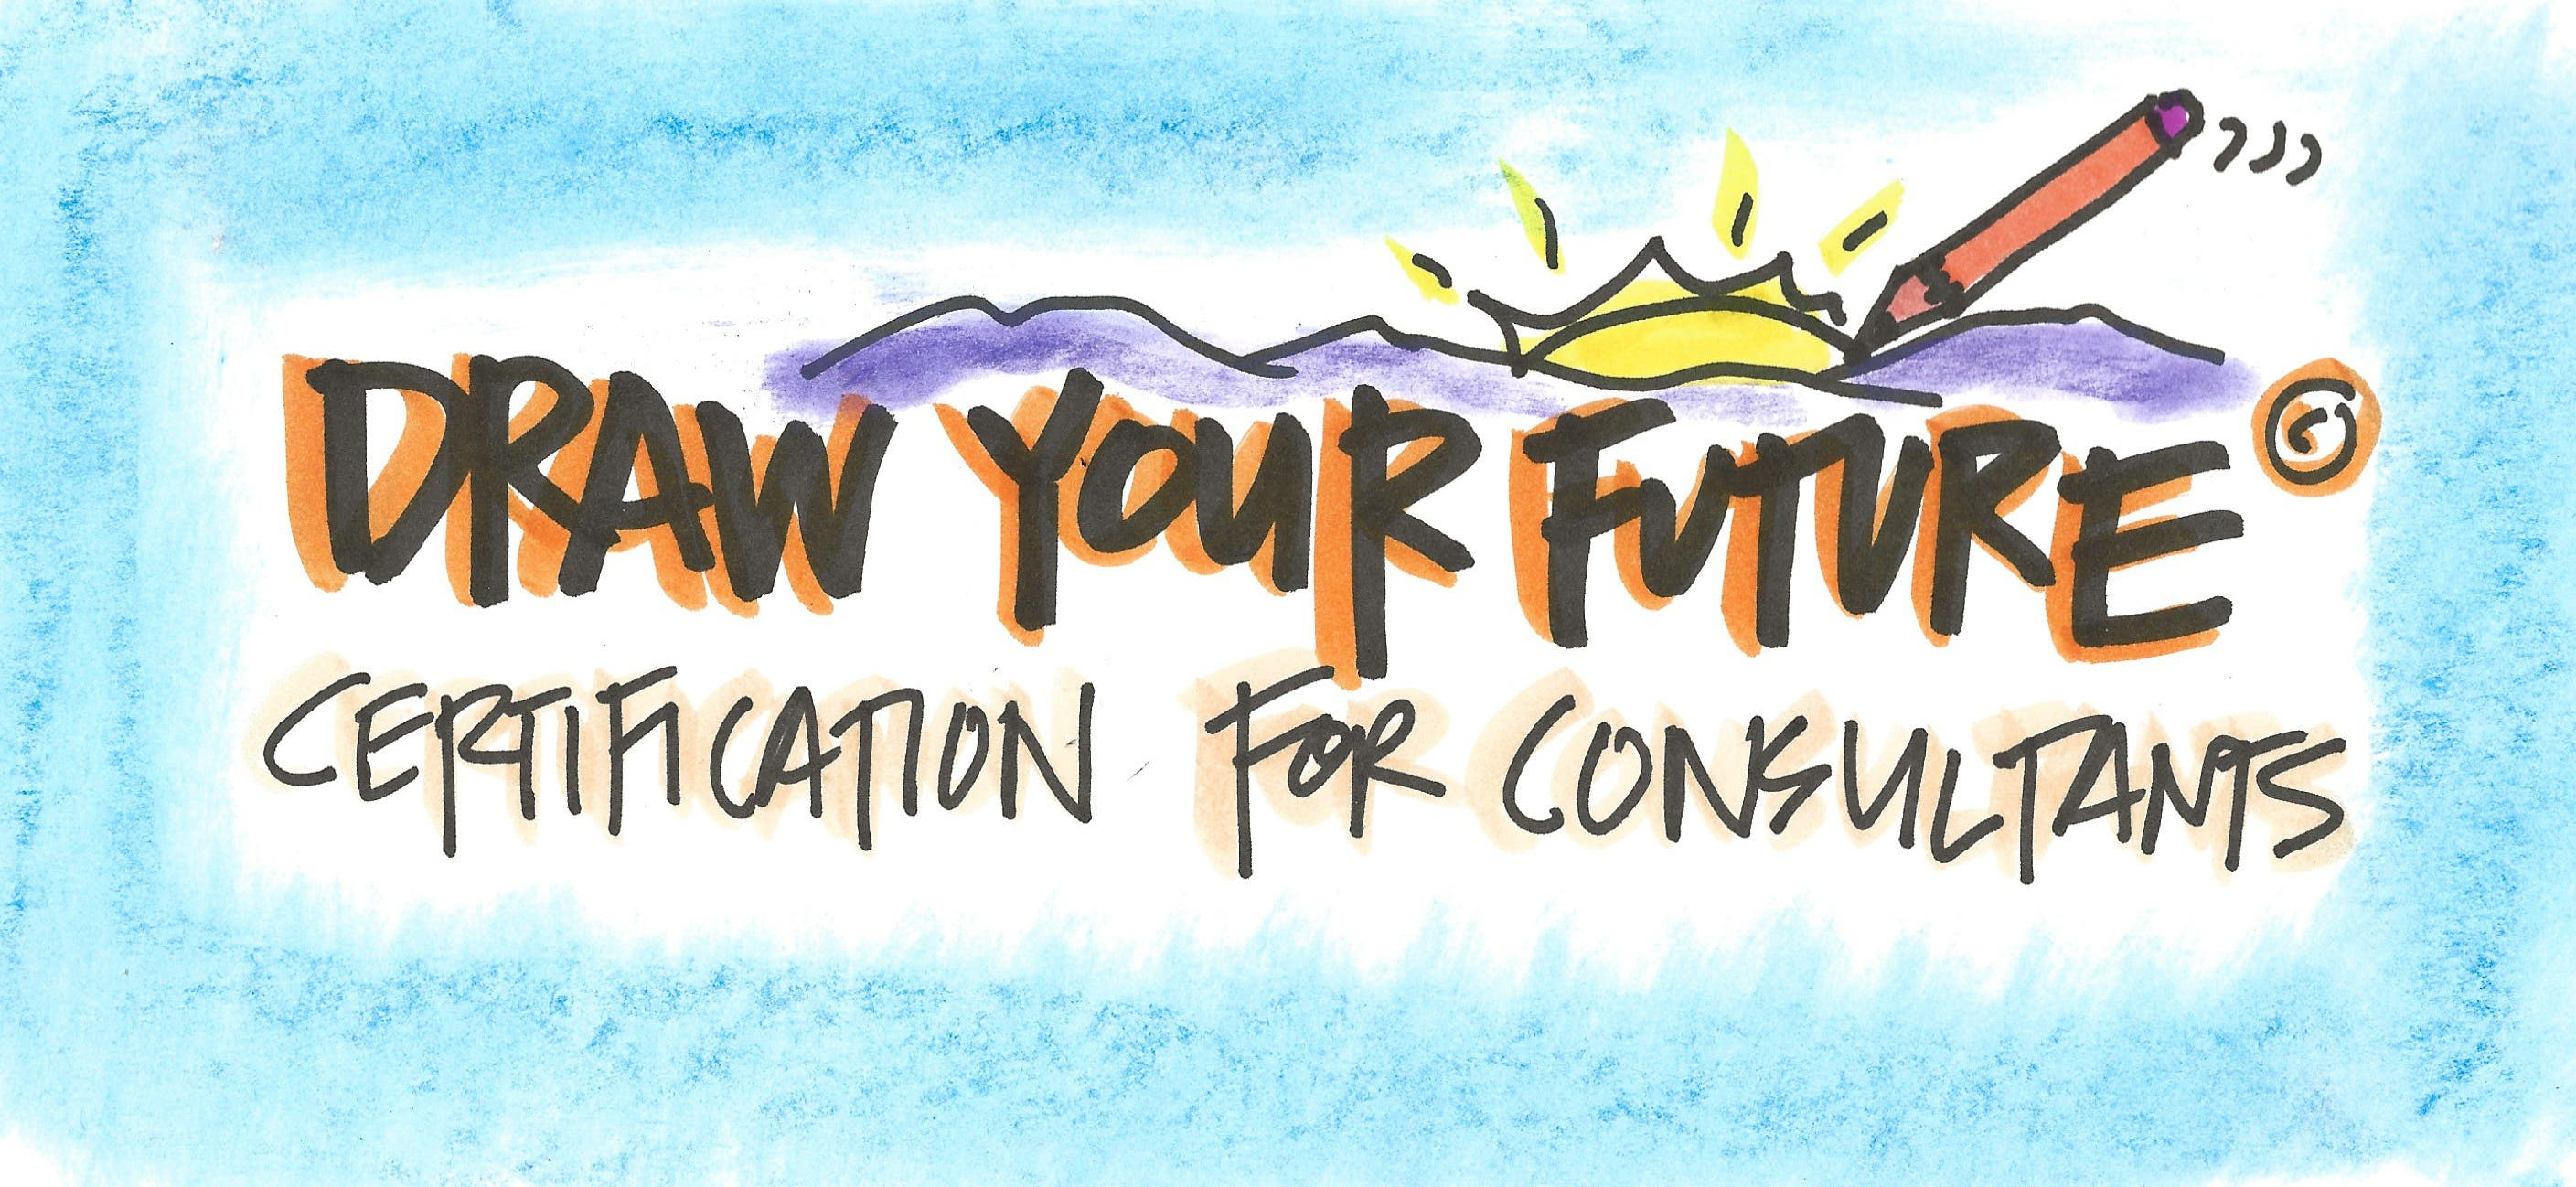 Draw Your Future Certification for Consultants- NEXT-TRAINING-STARTS-SOON